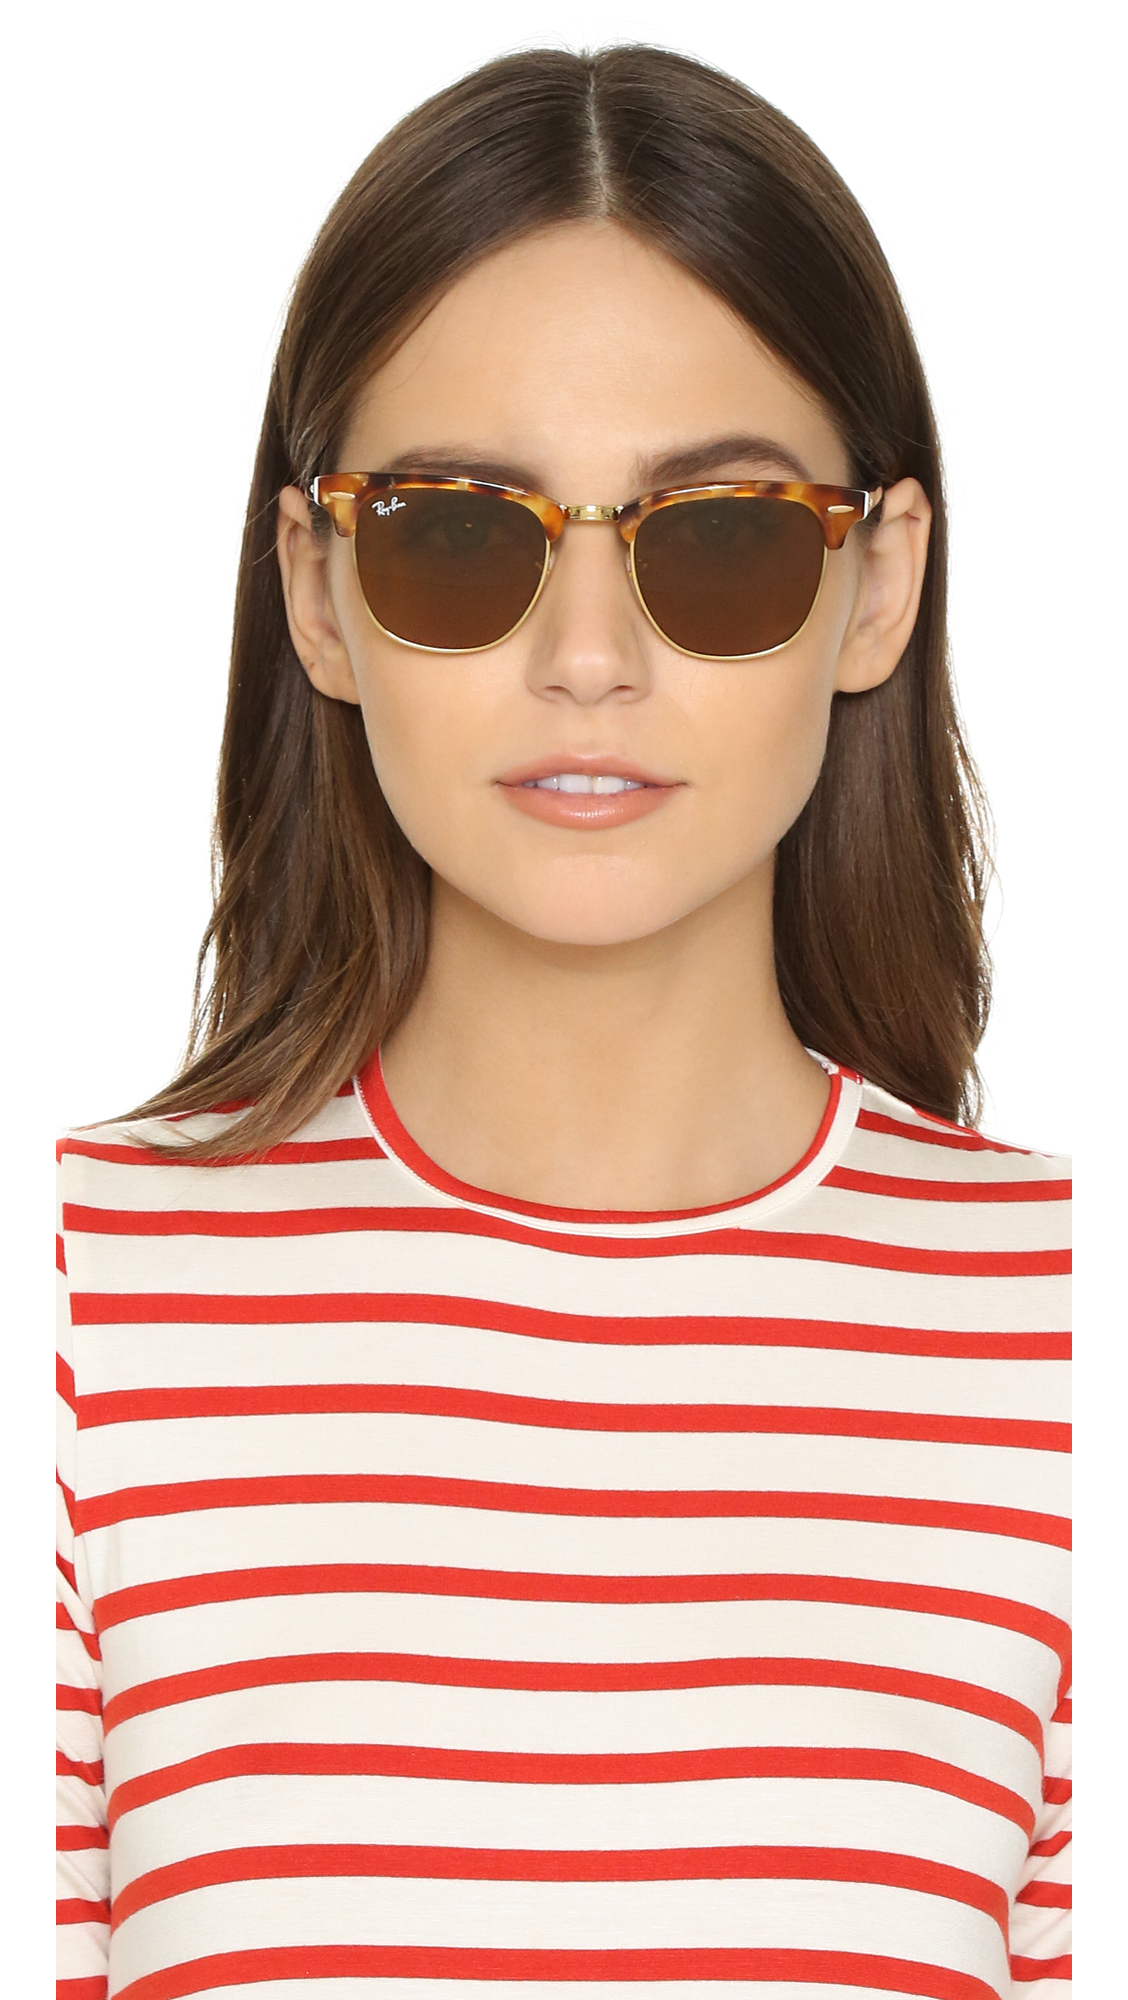 ray ban youngster clubmaster sunglasses  gallery. previously sold at: shopbop · women's clubmaster sunglasses women's ray ban clubmaster